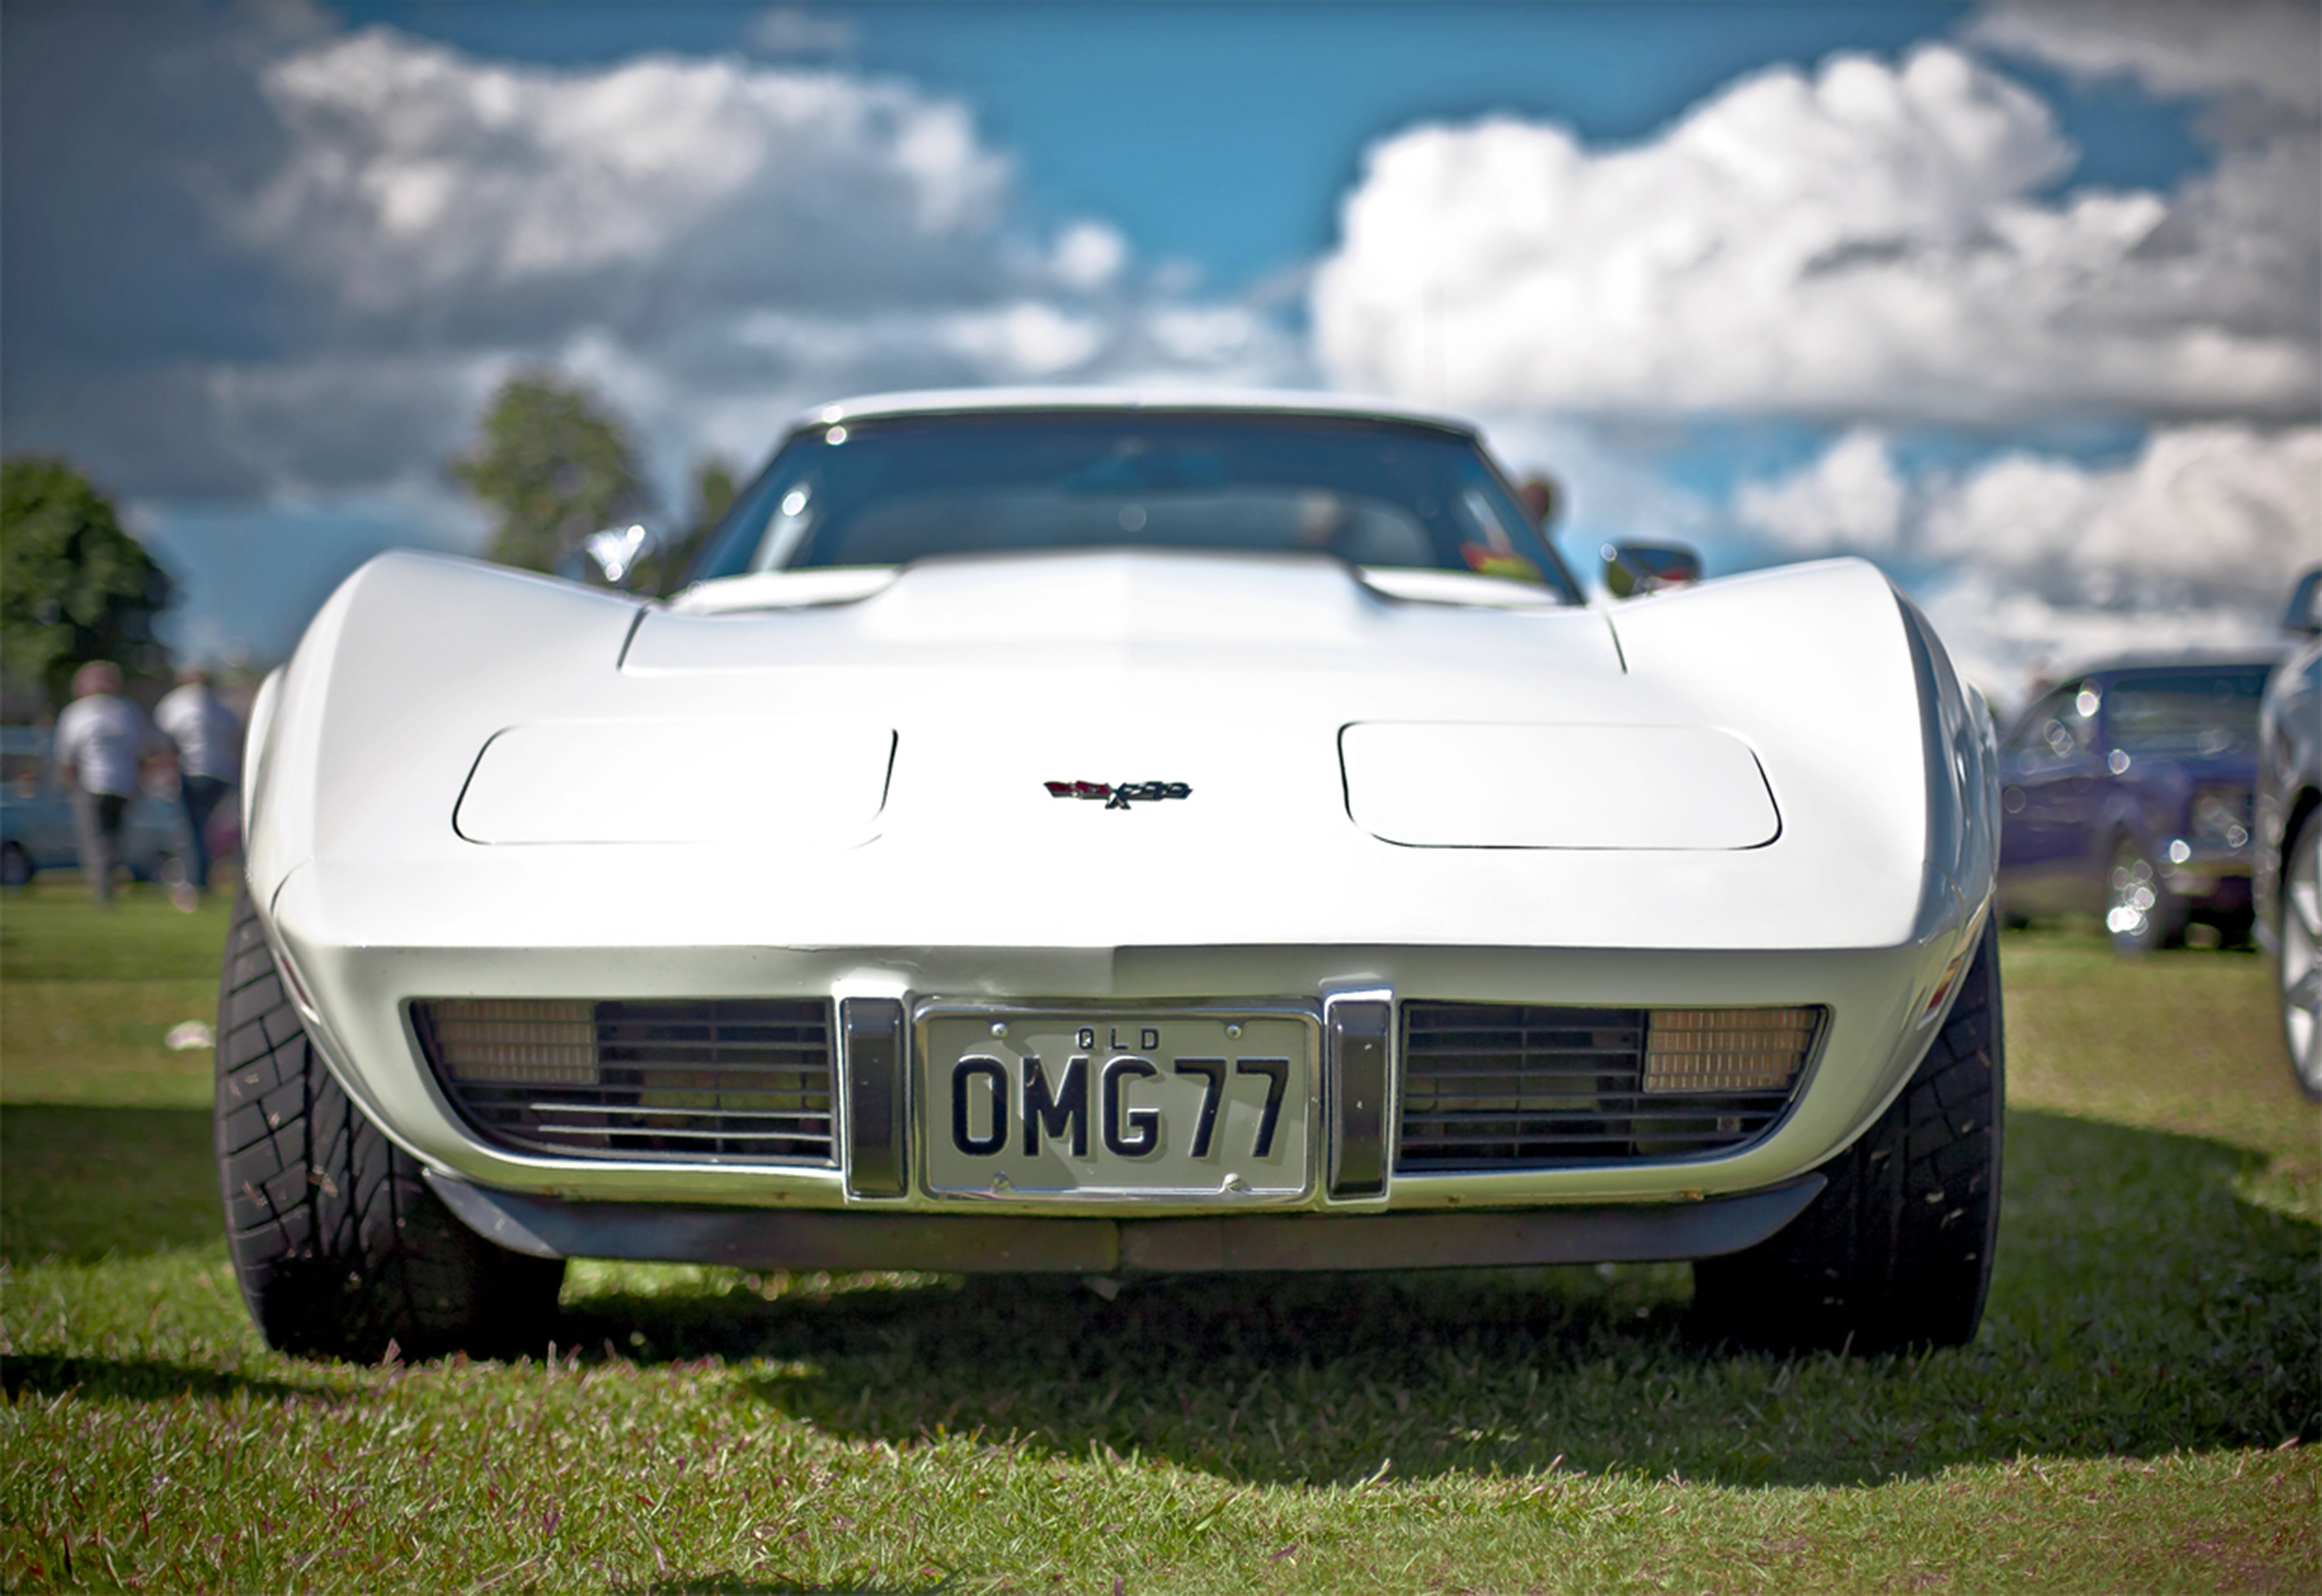 White Corvette C3 With Omg77 License Plate on Display